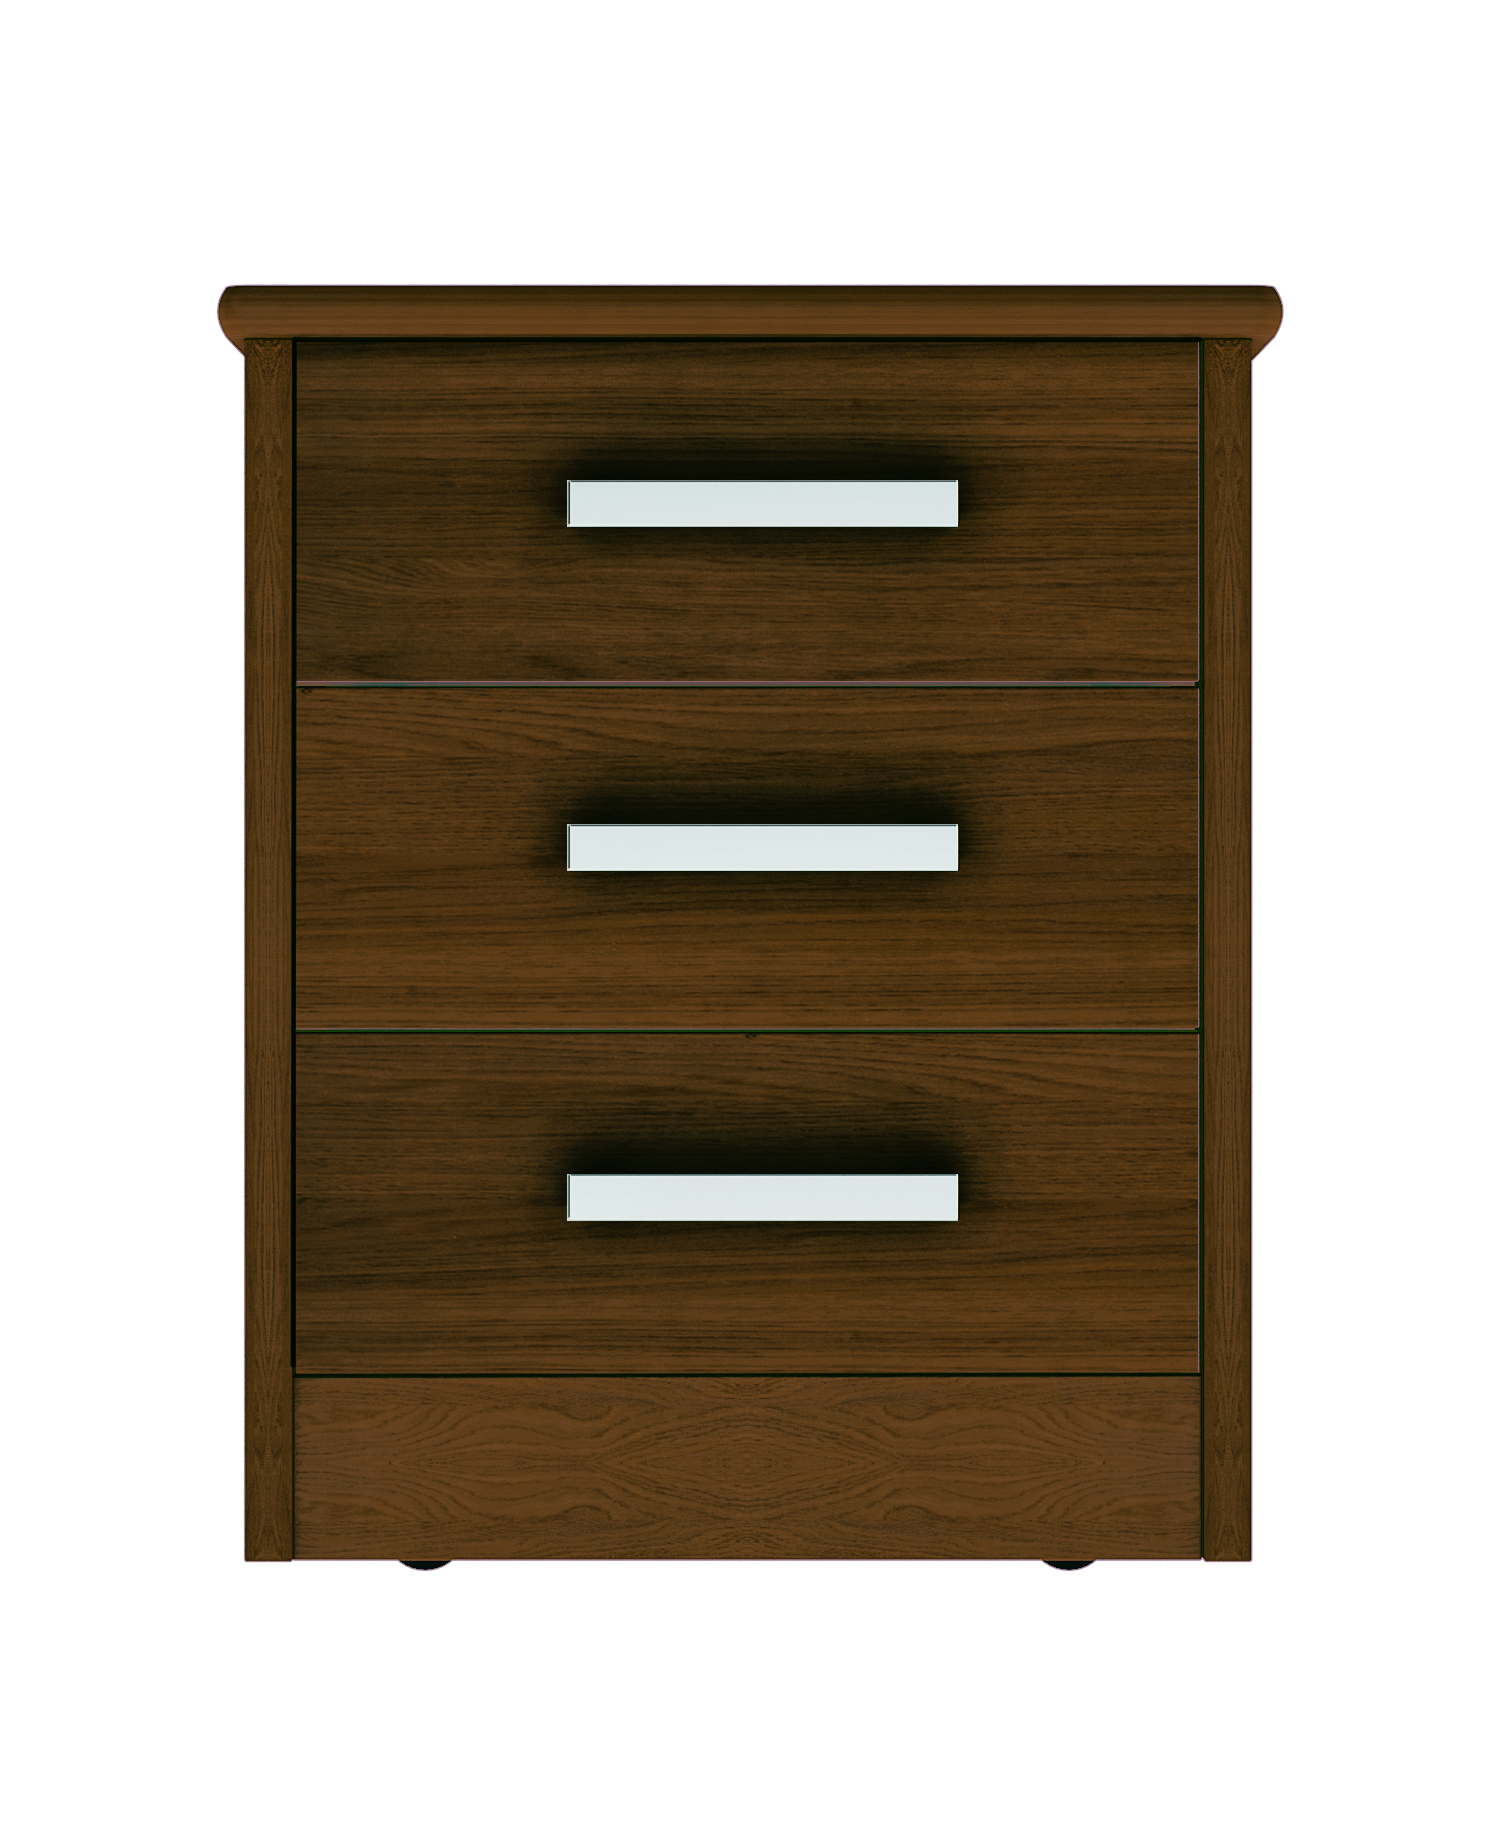 Moda 3 Drawer Bedside